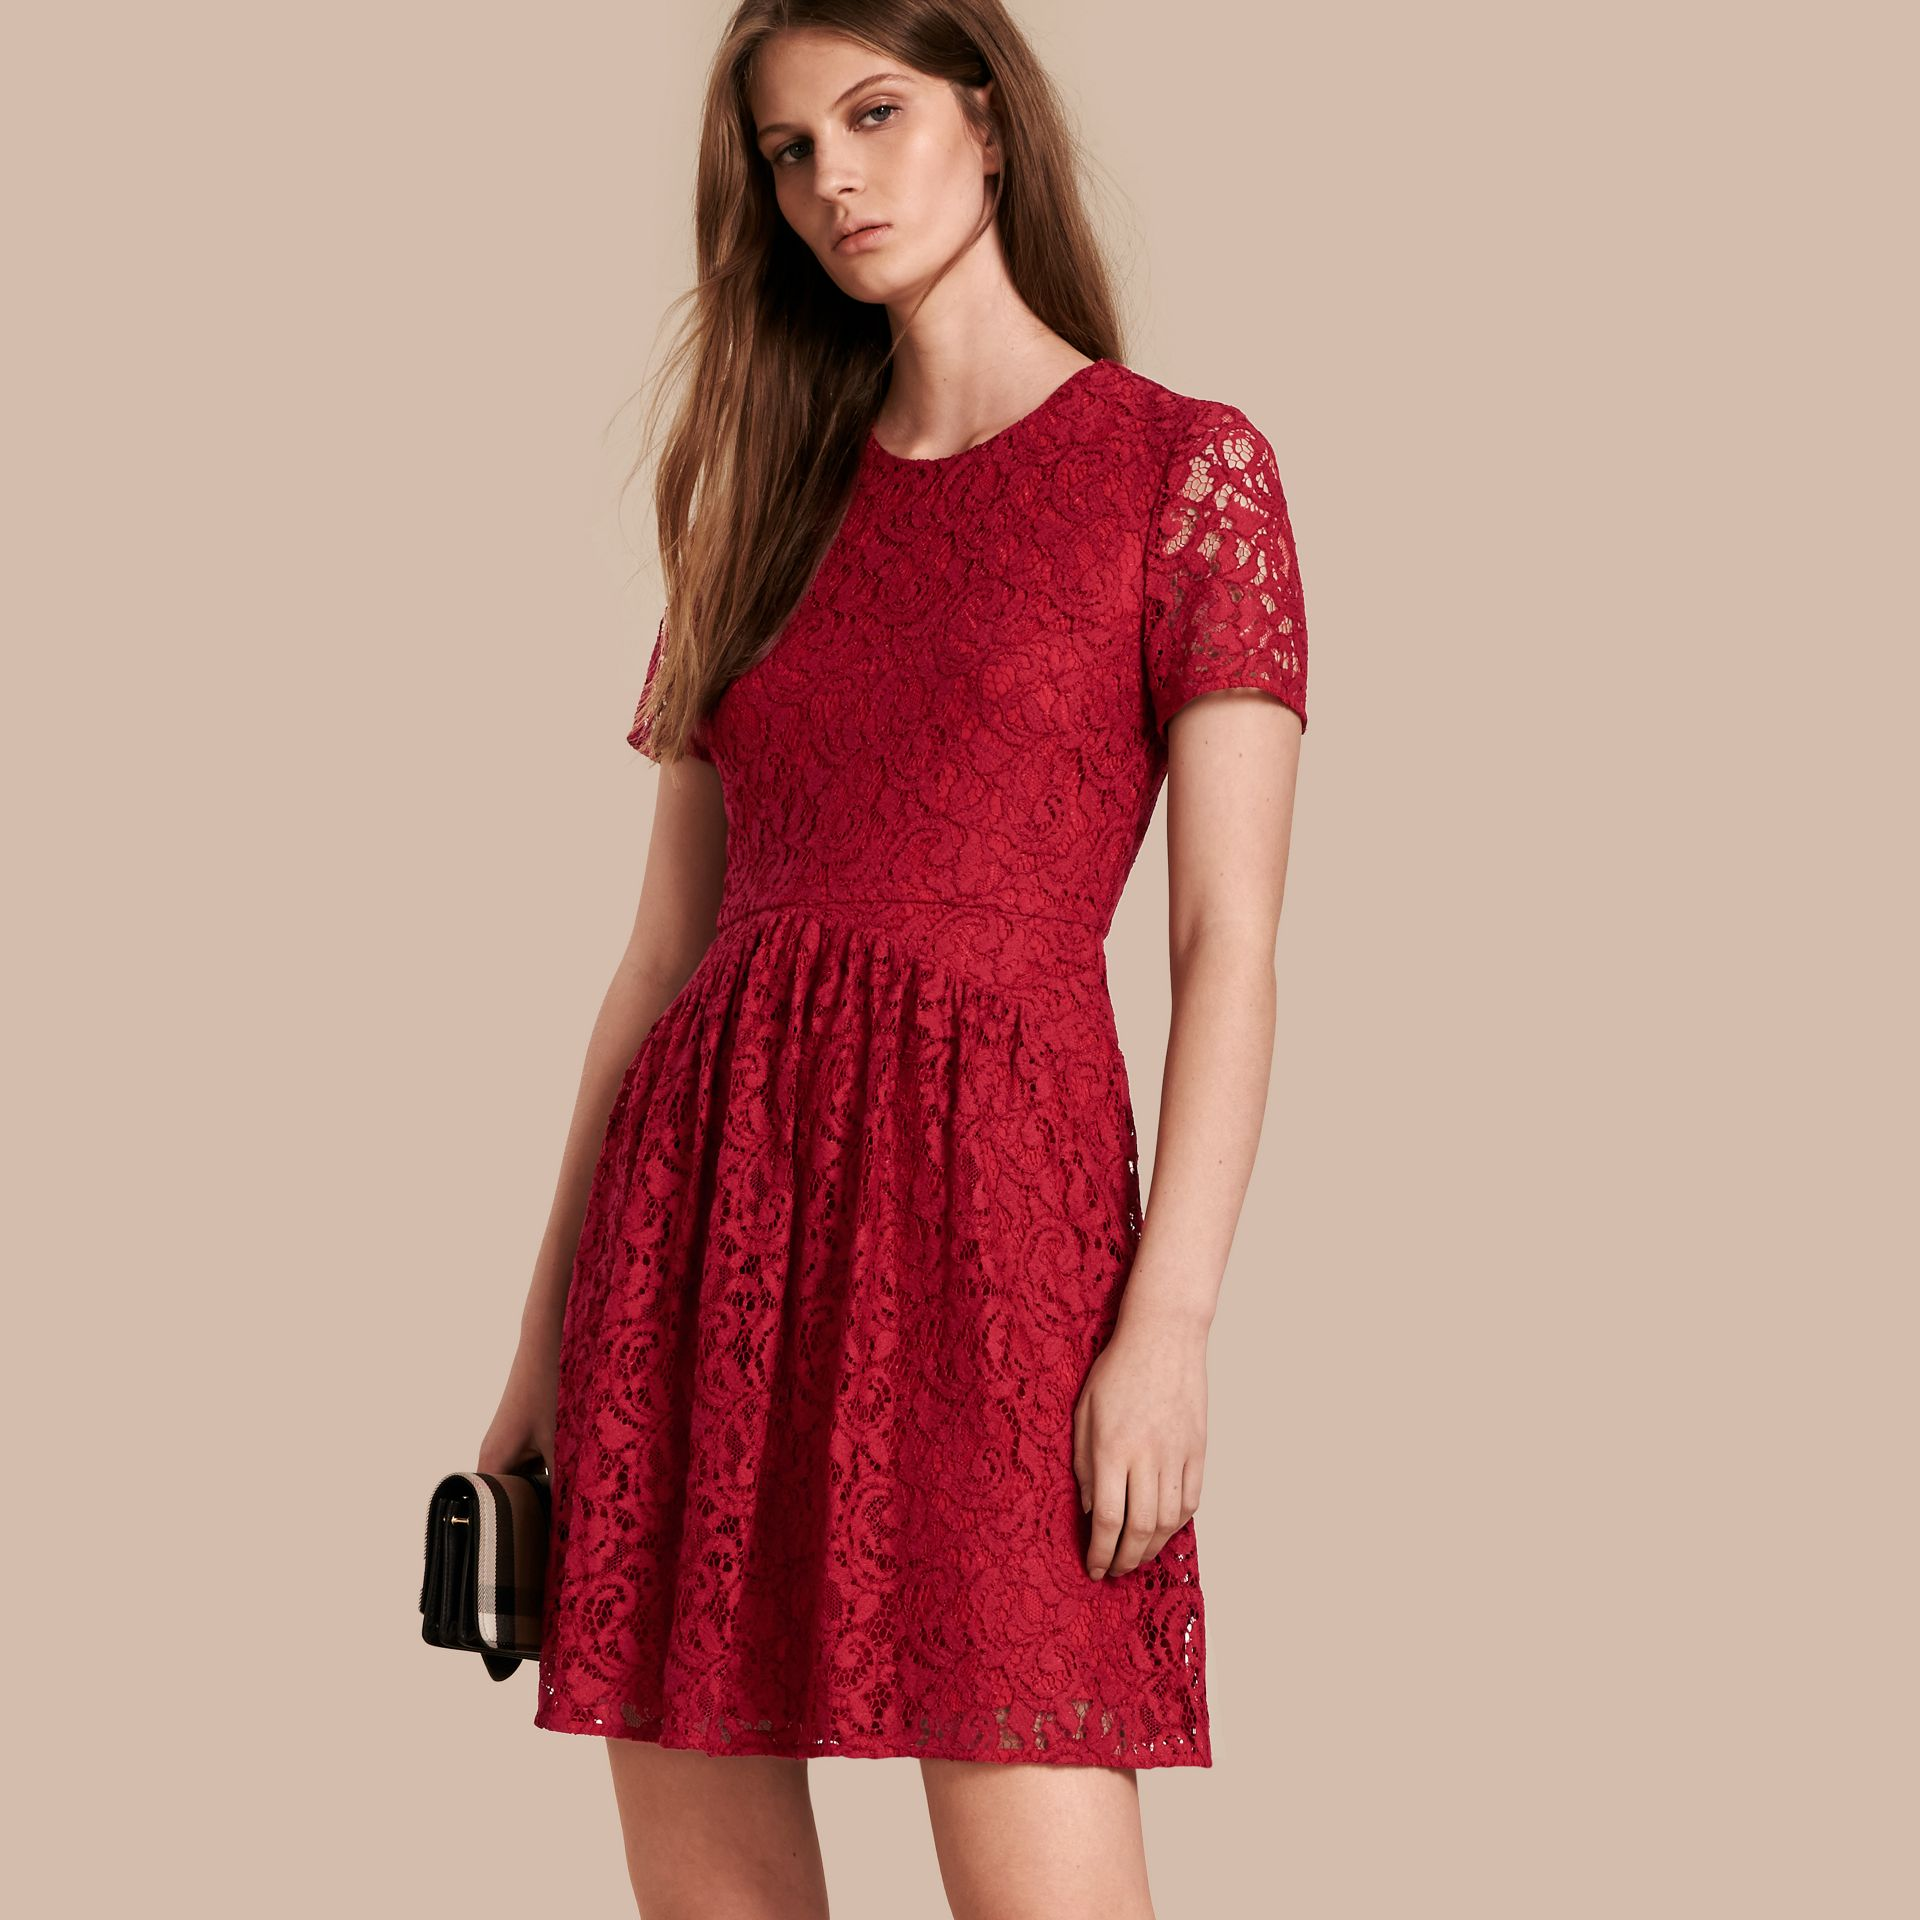 Parade red Fit-and-flare Dropped-waist Lace Dress Parade Red - gallery image 1